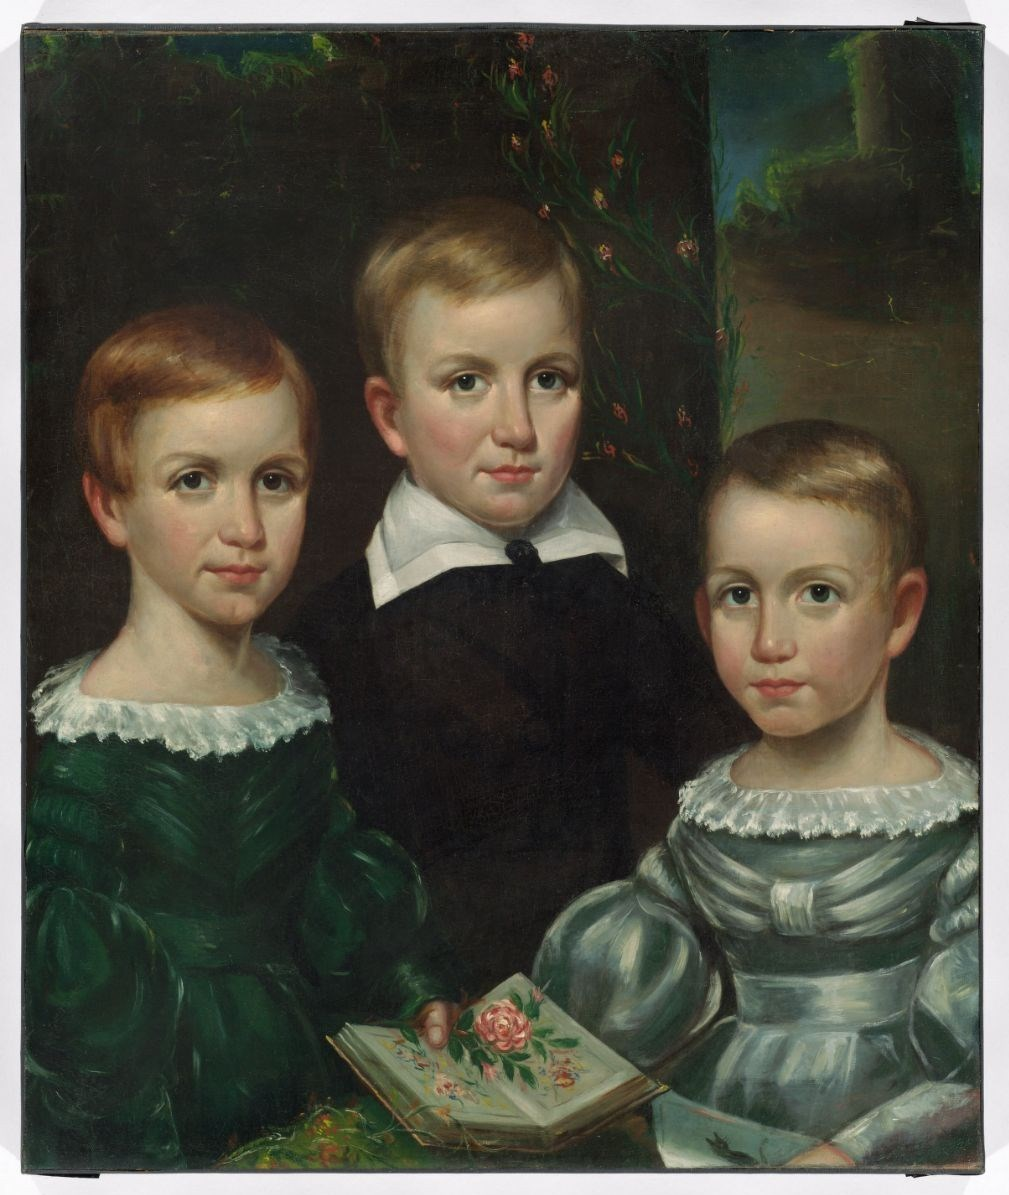 Bullard, Otis Allan, 1816-1853. The Dickinson children, c. 1840.